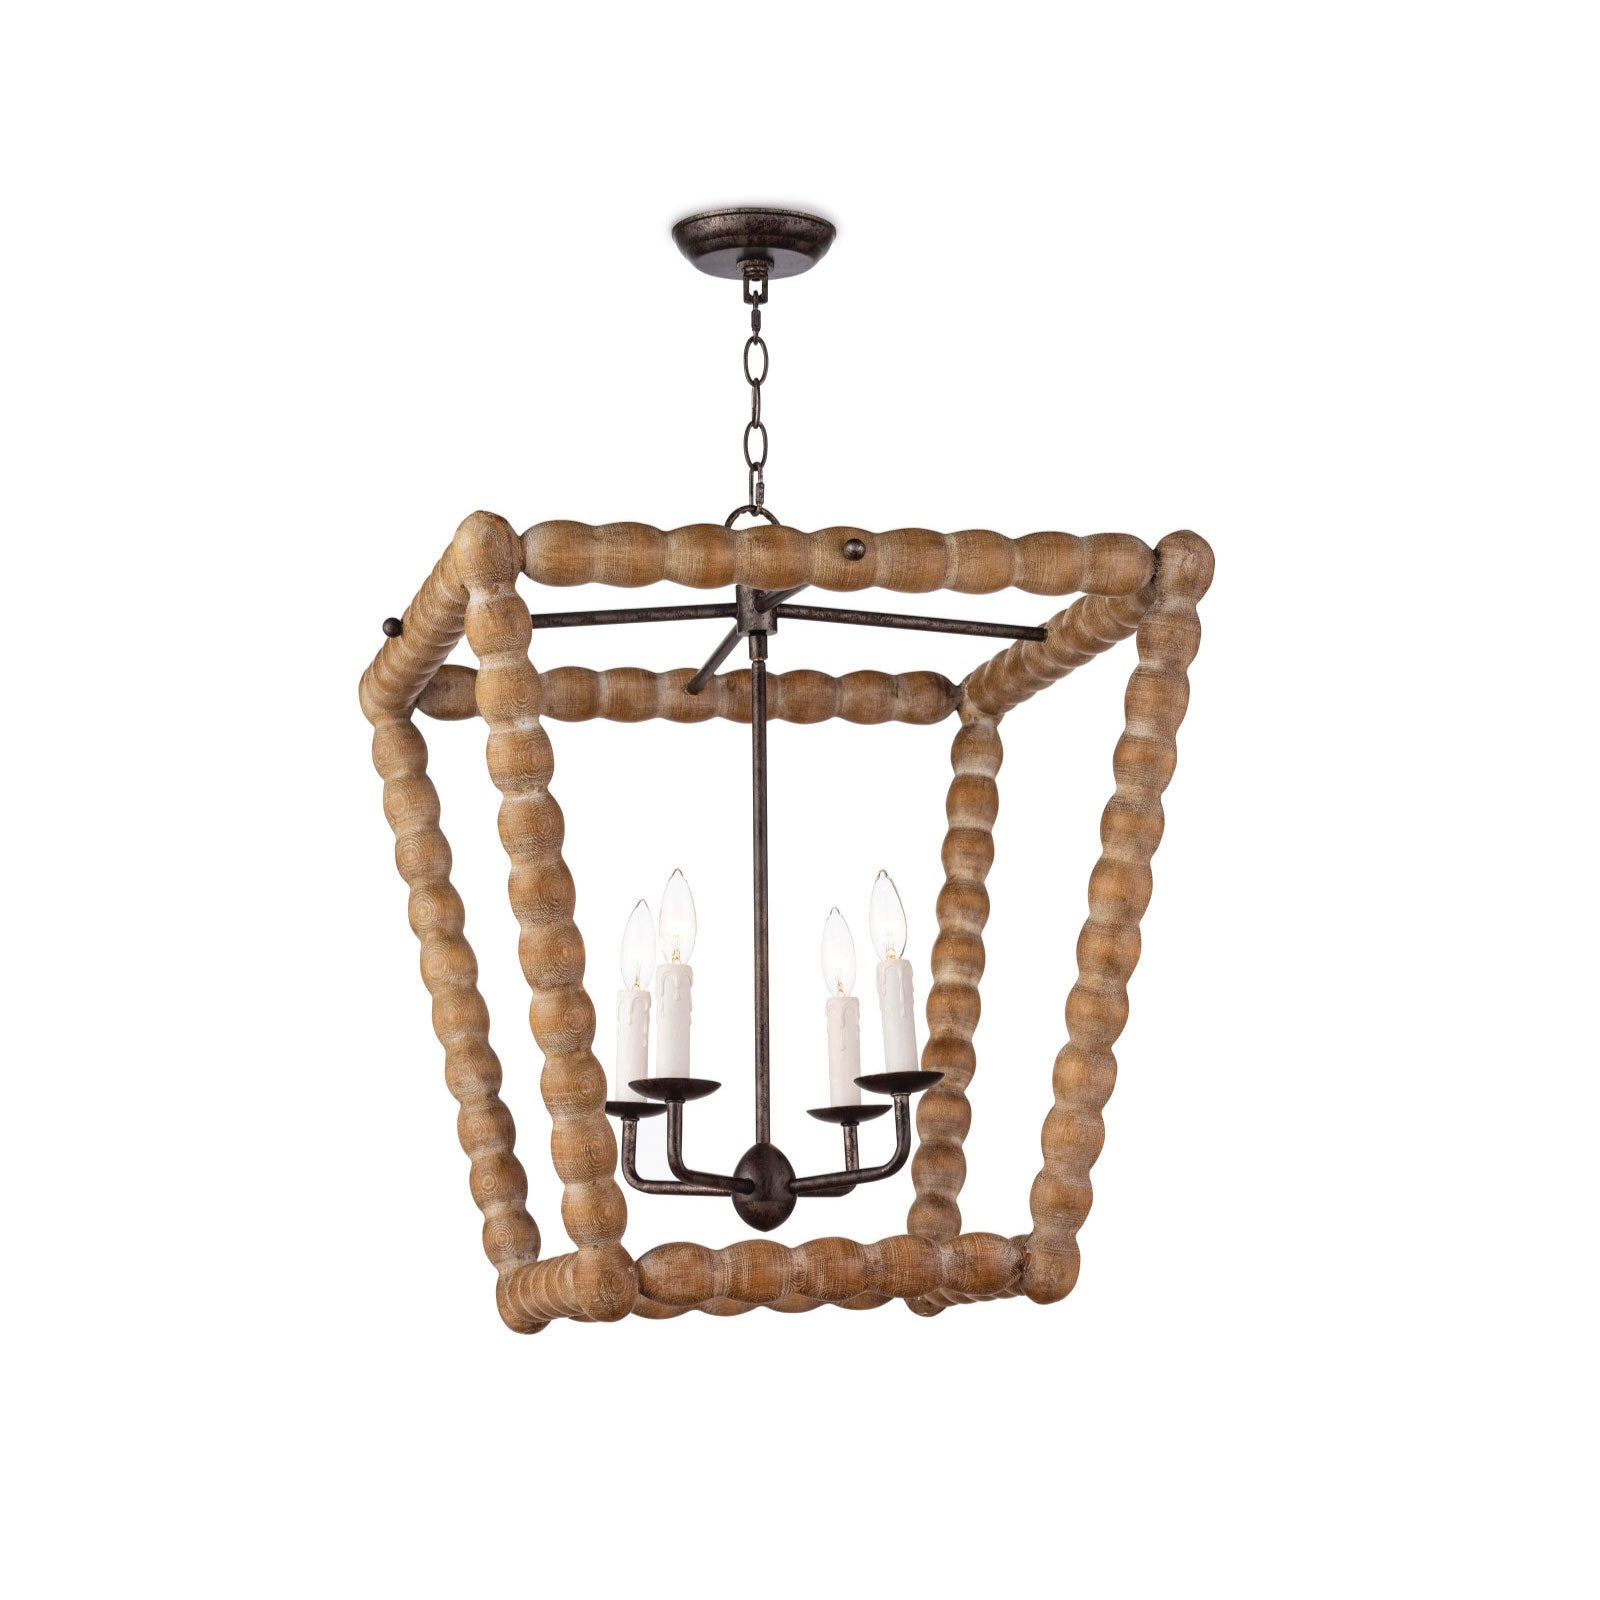 Spool Lantern in Washed Wood